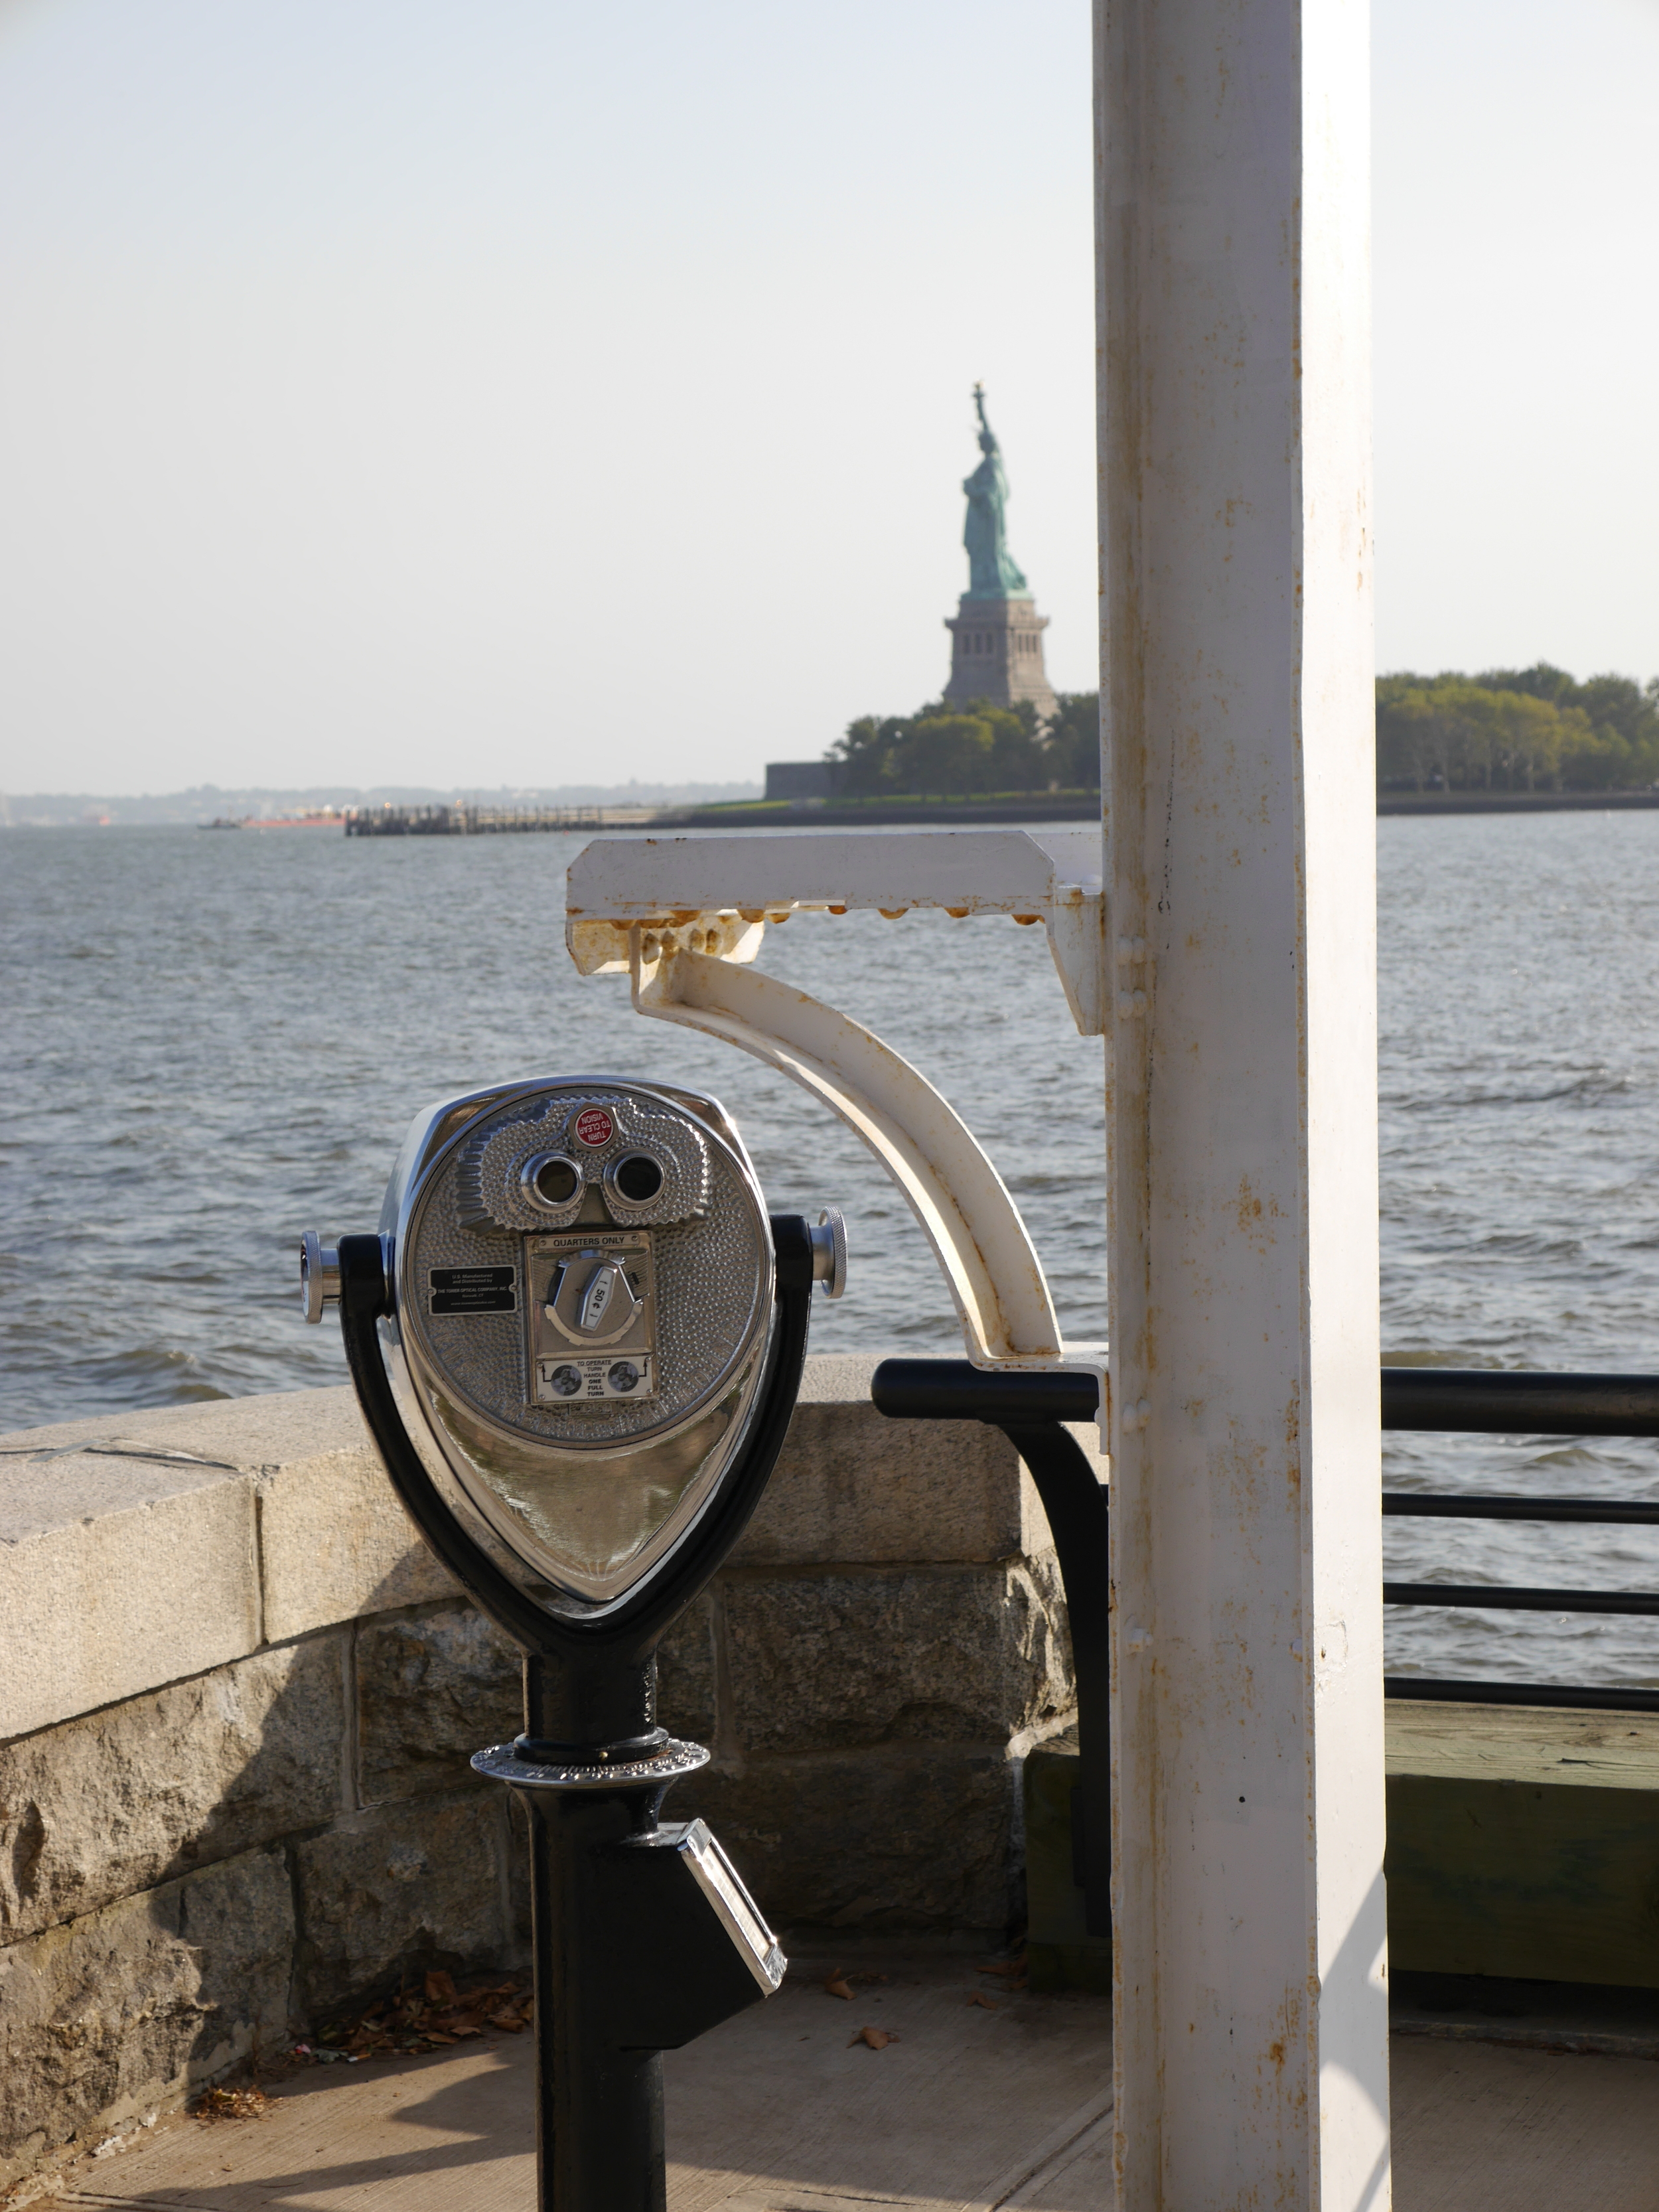 Another shot of the Statue of Liberty from Ellis Island.